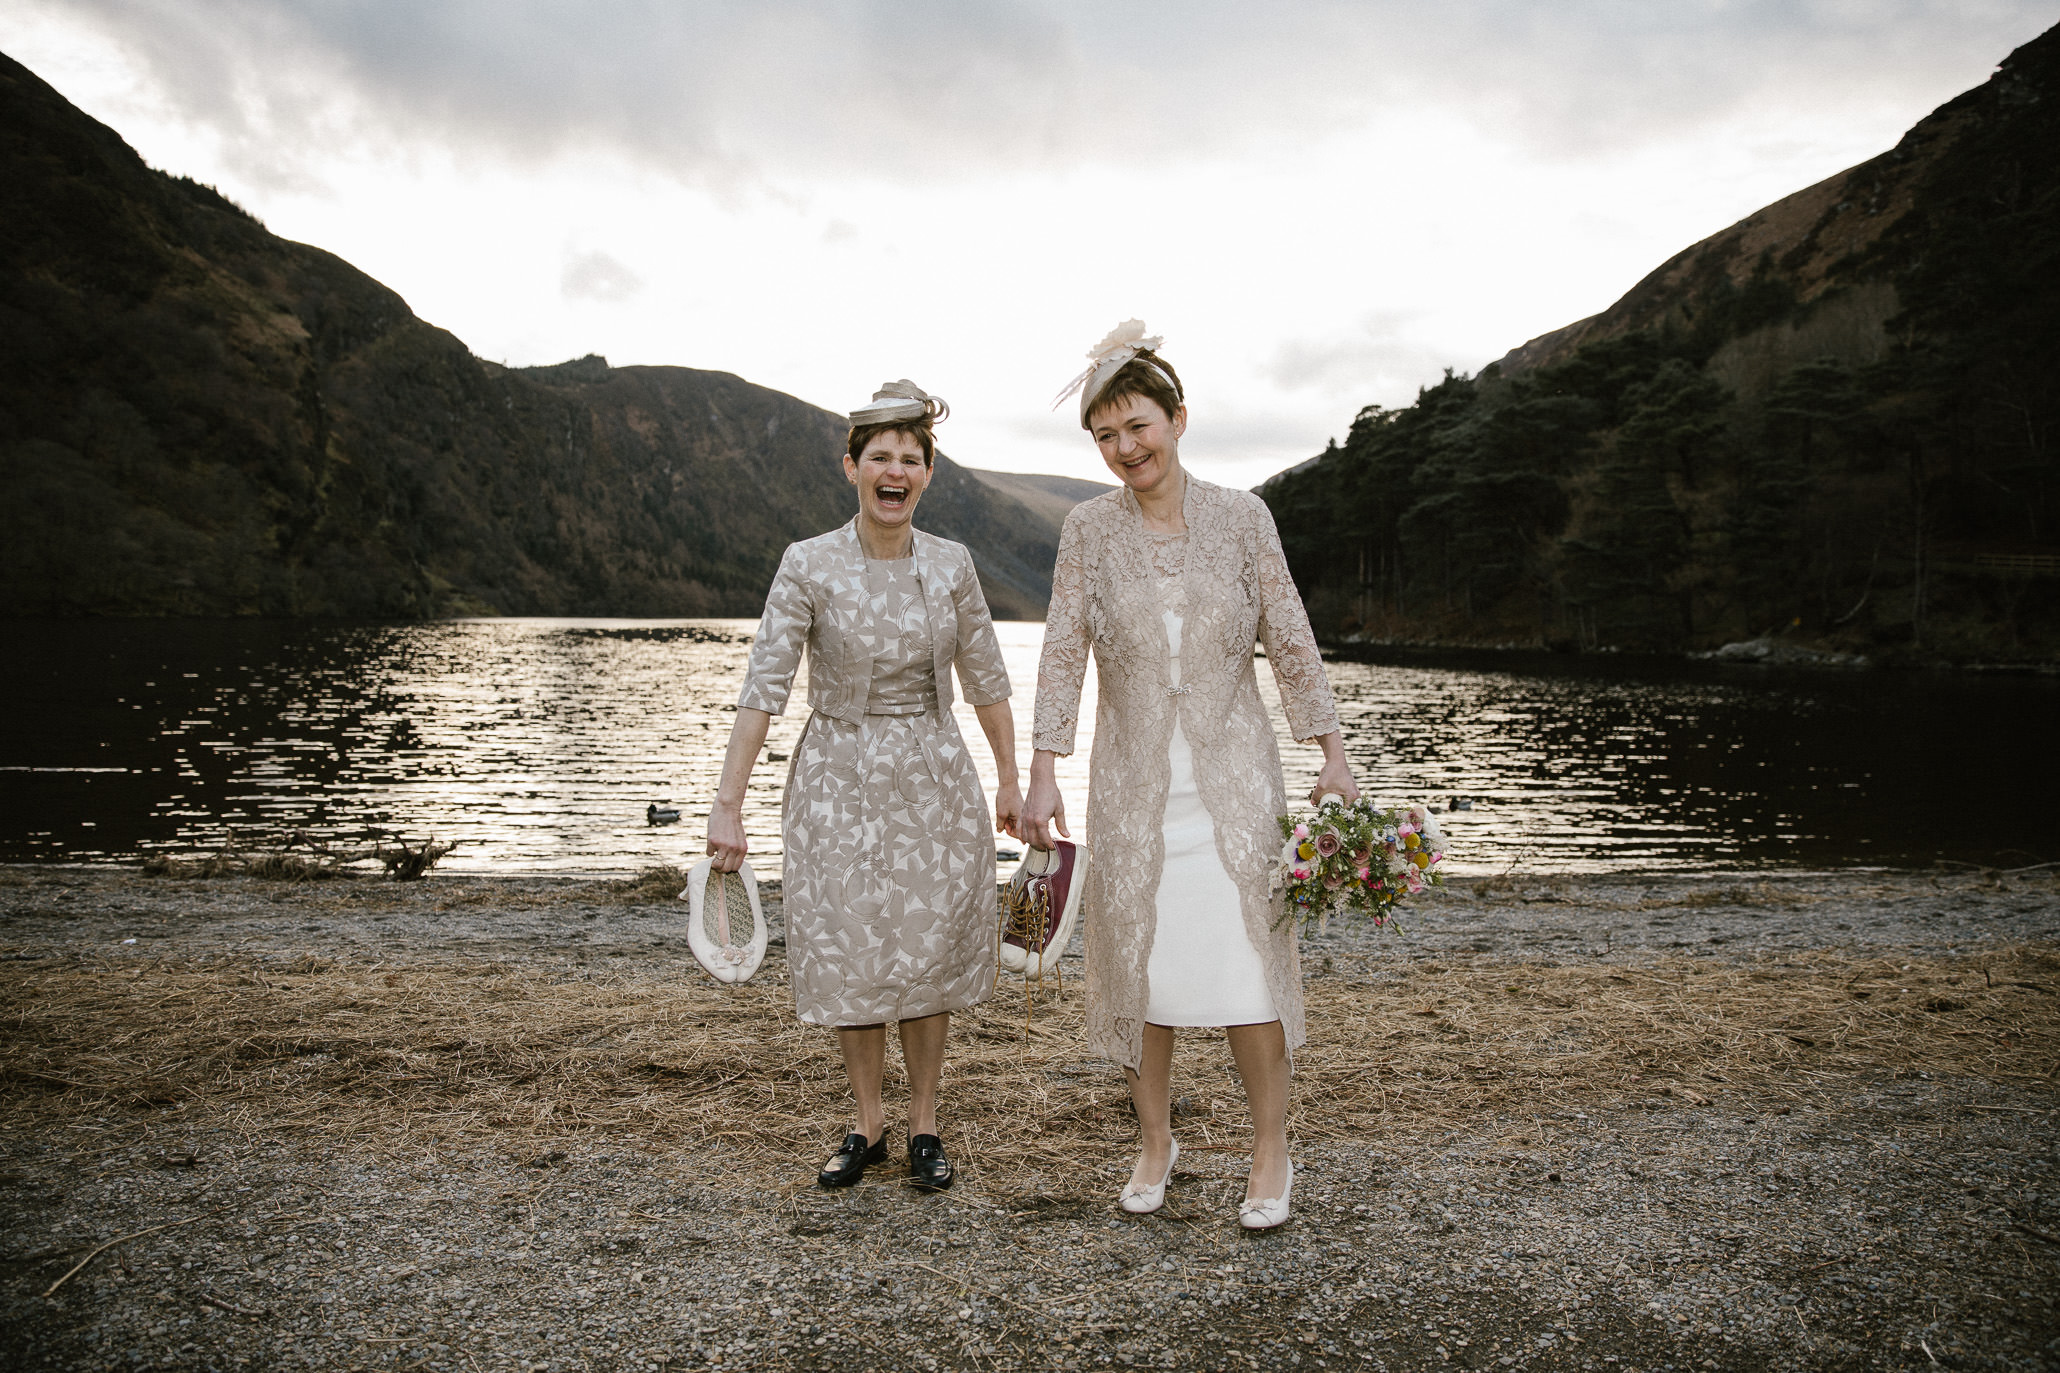 clairebyrnephotography-glendalough-wedding-16.jpg